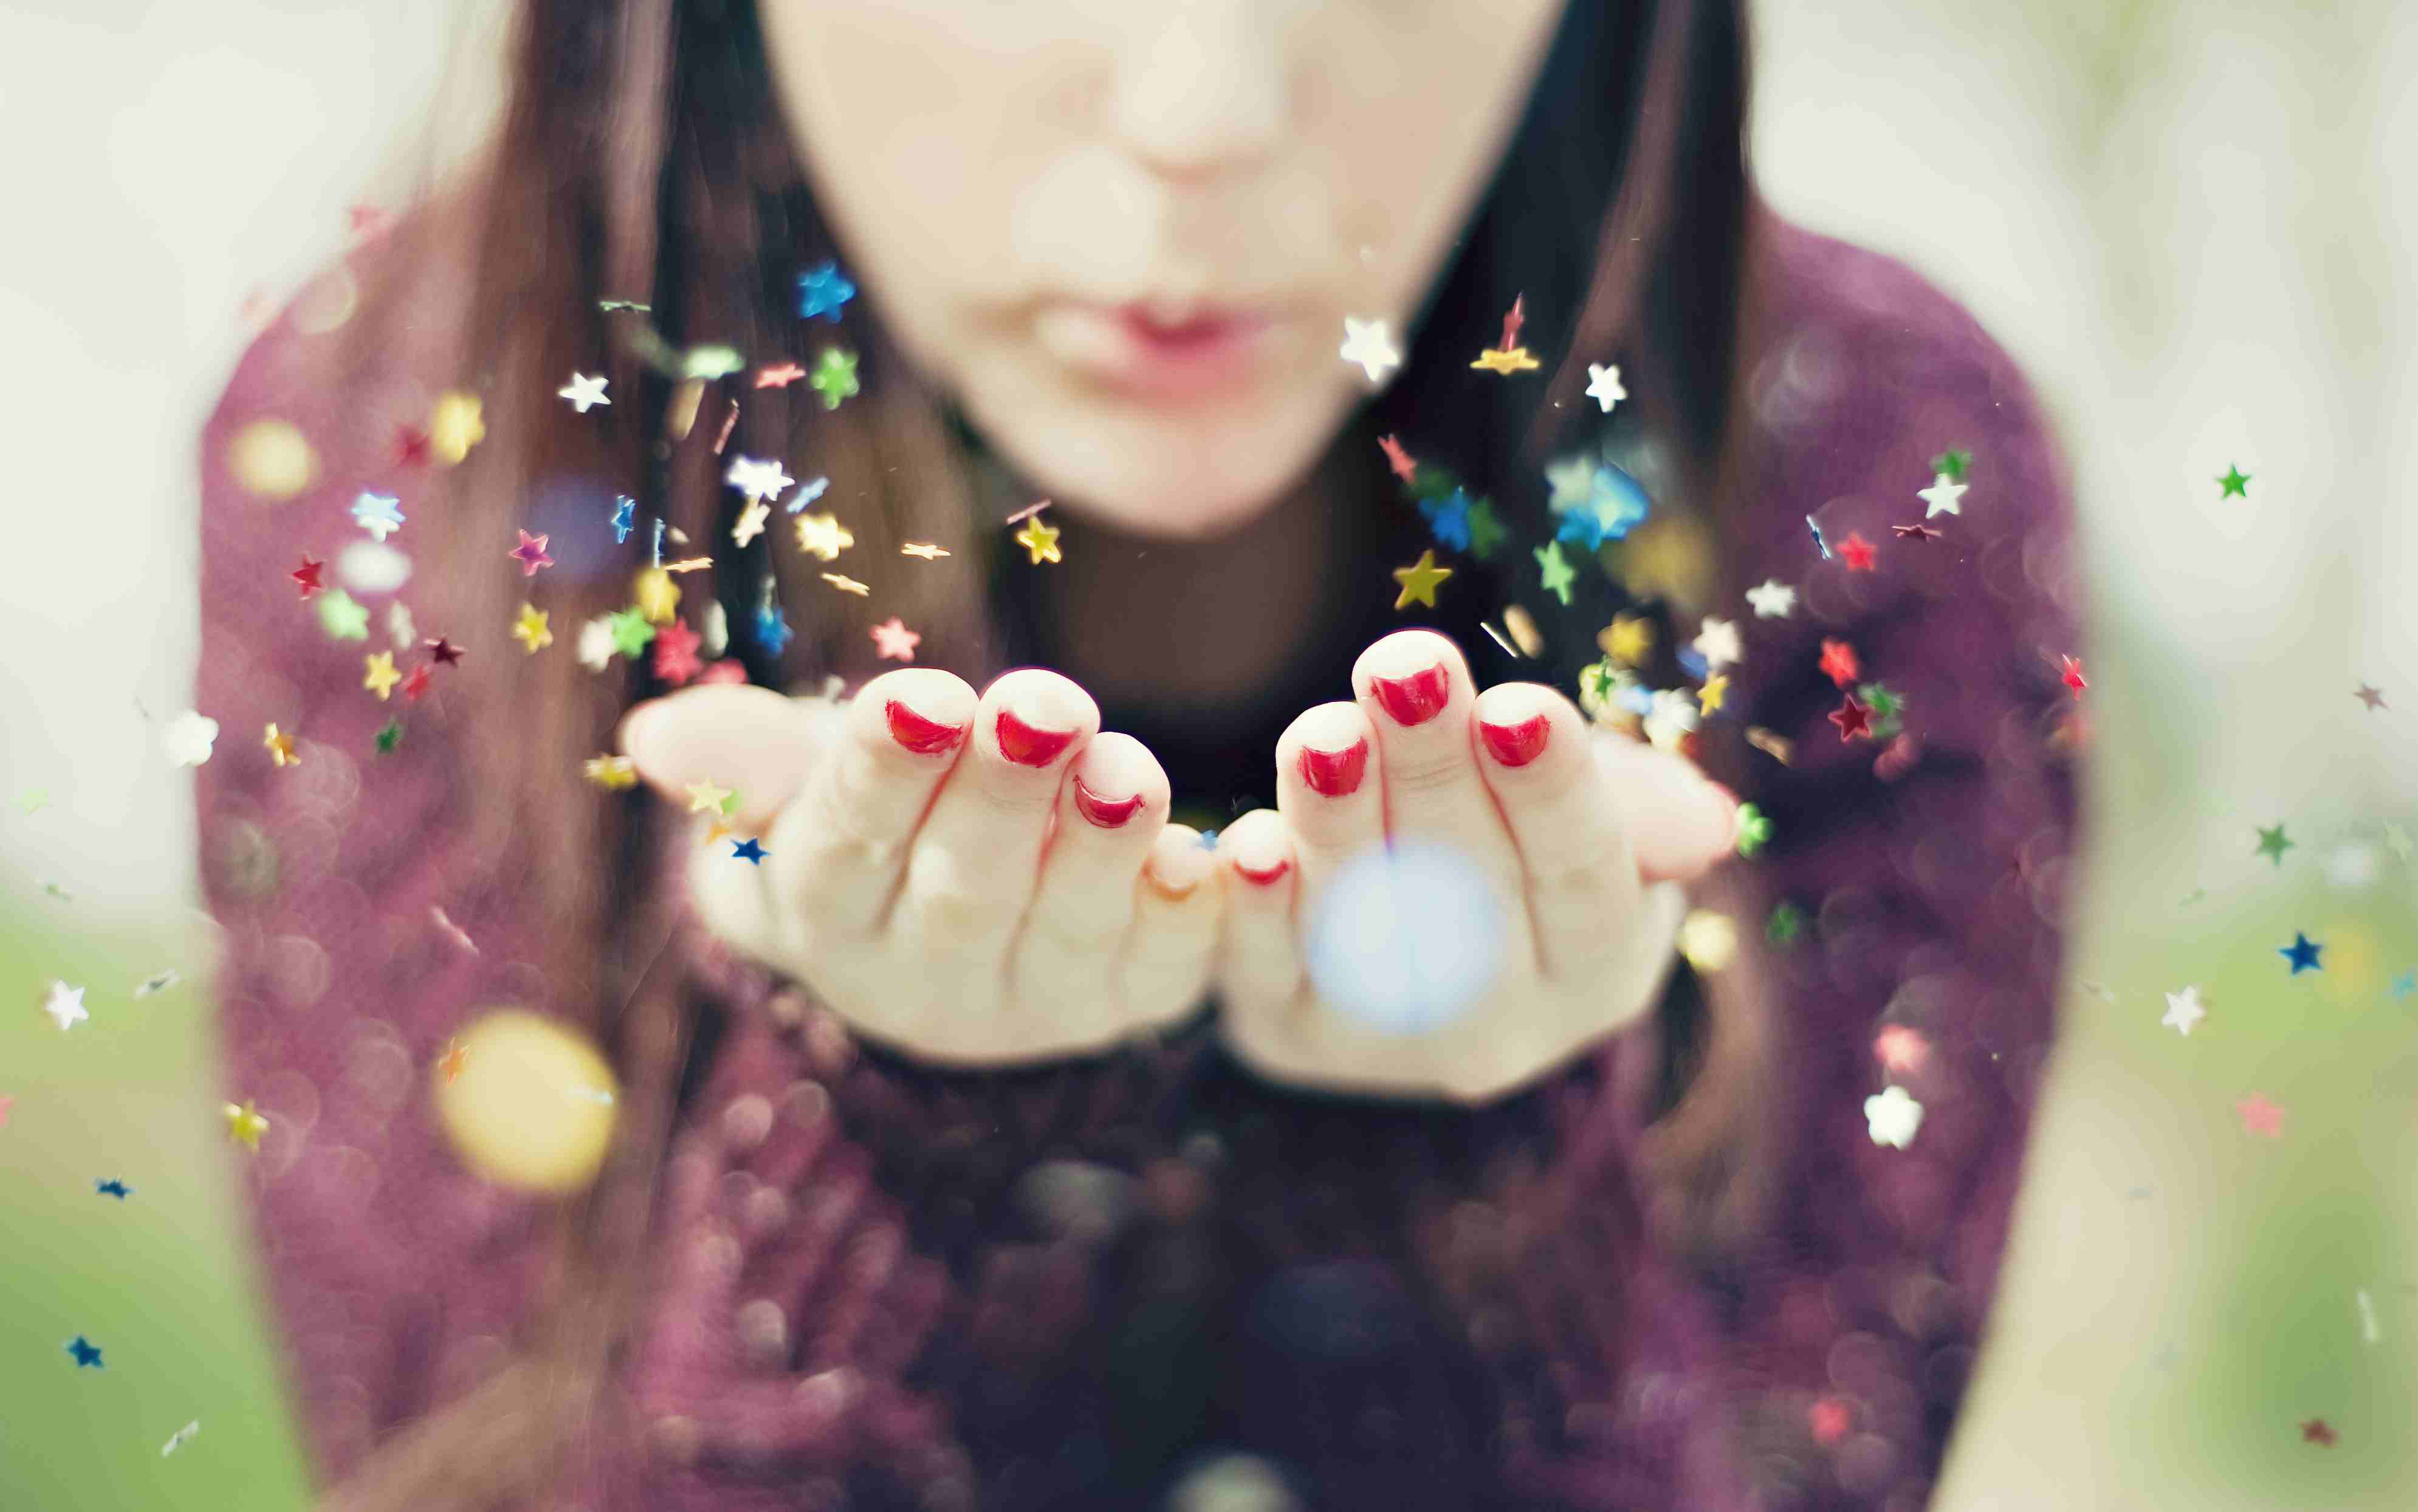 Young woman blowing star confetti